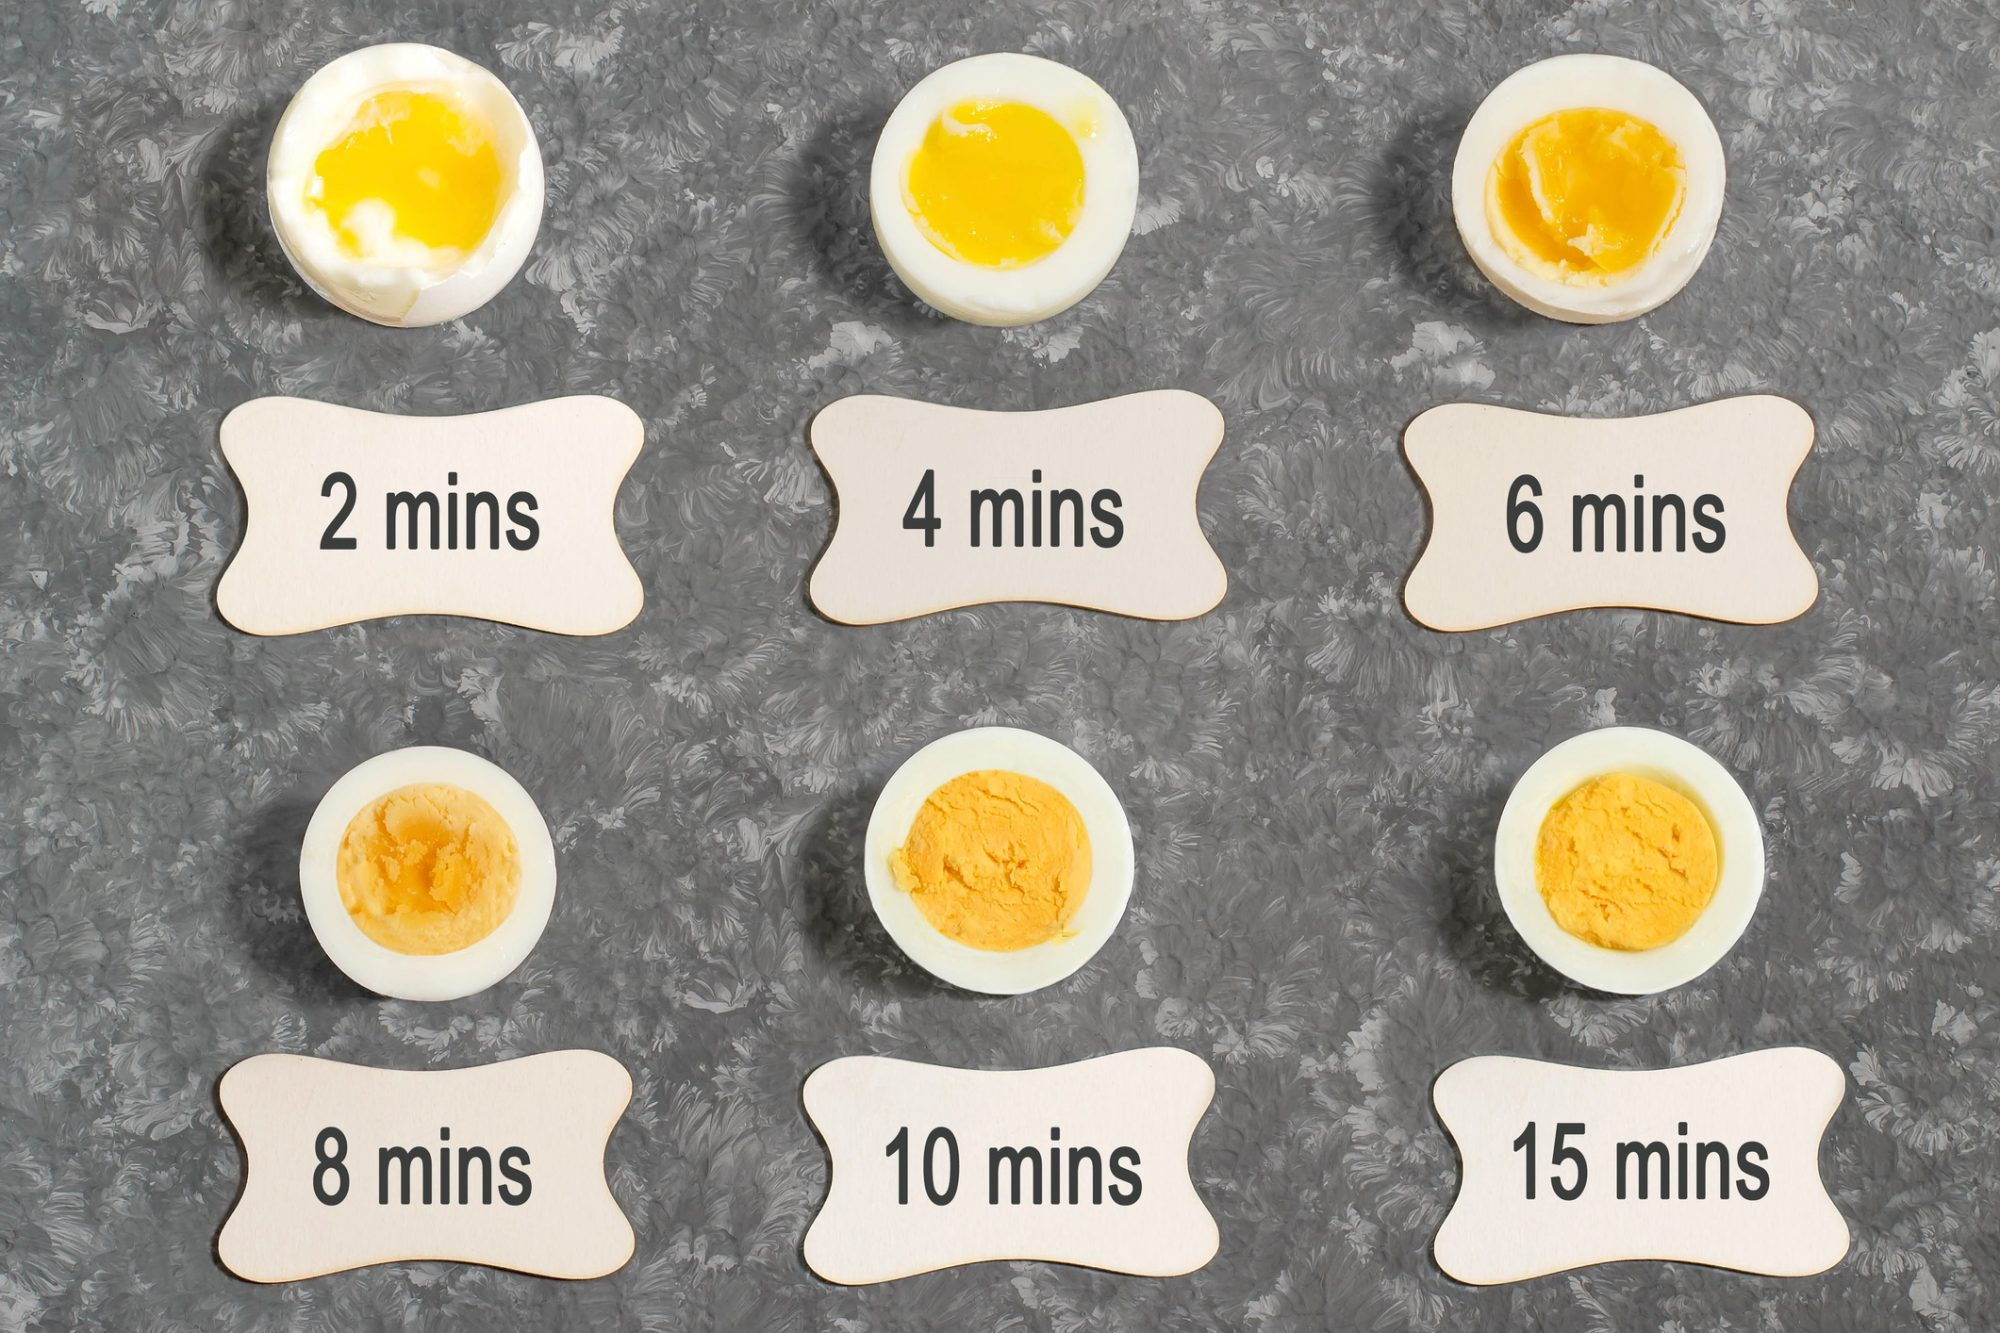 boiled eggs at different cook times from 2 minutes to 15 minutes